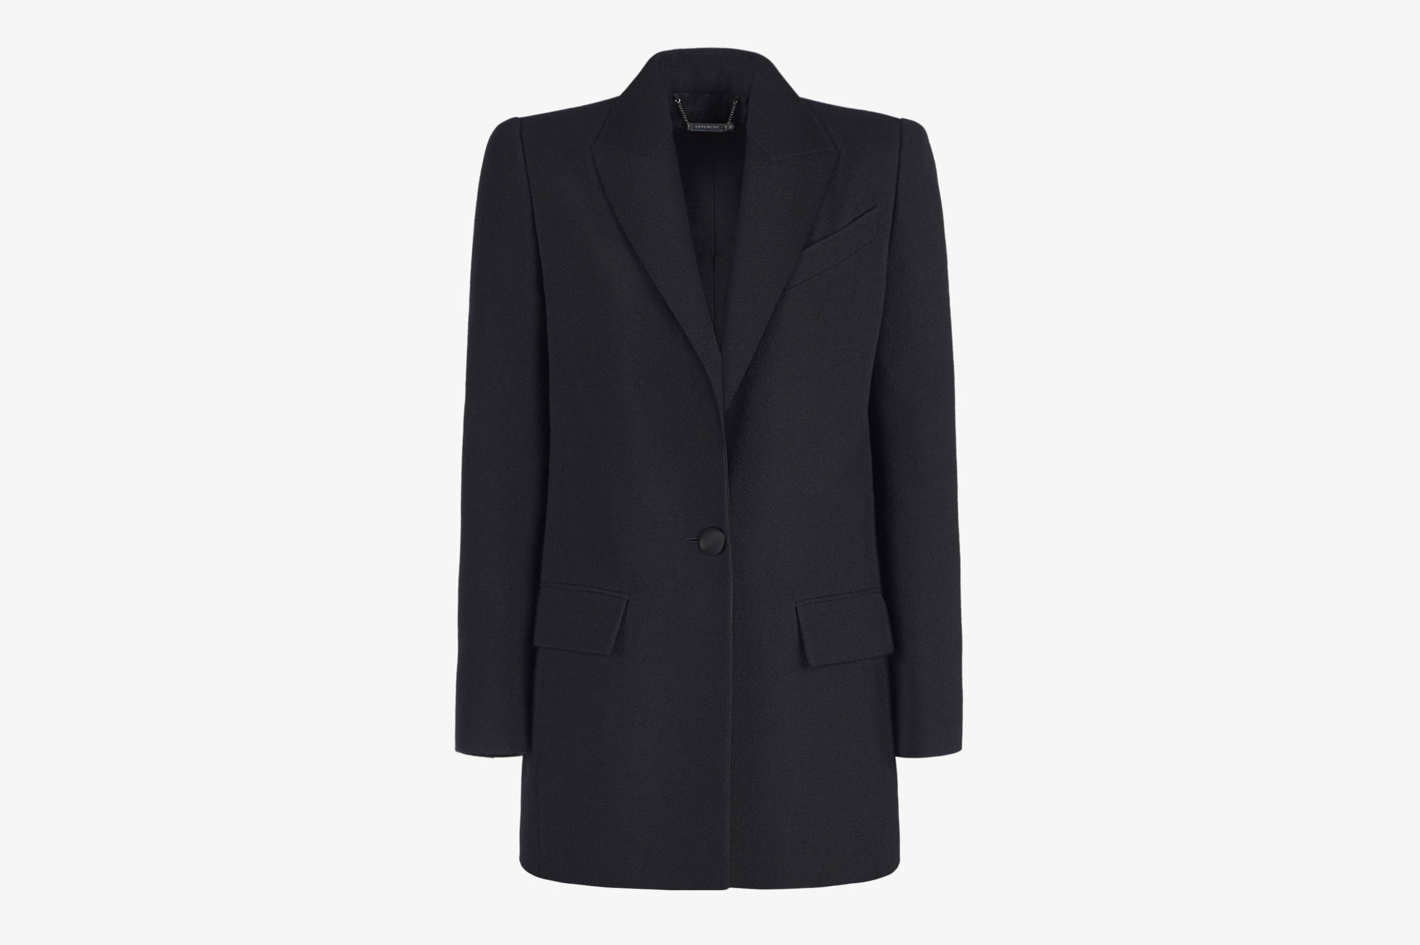 Givenchy Wool Fitted Jacket